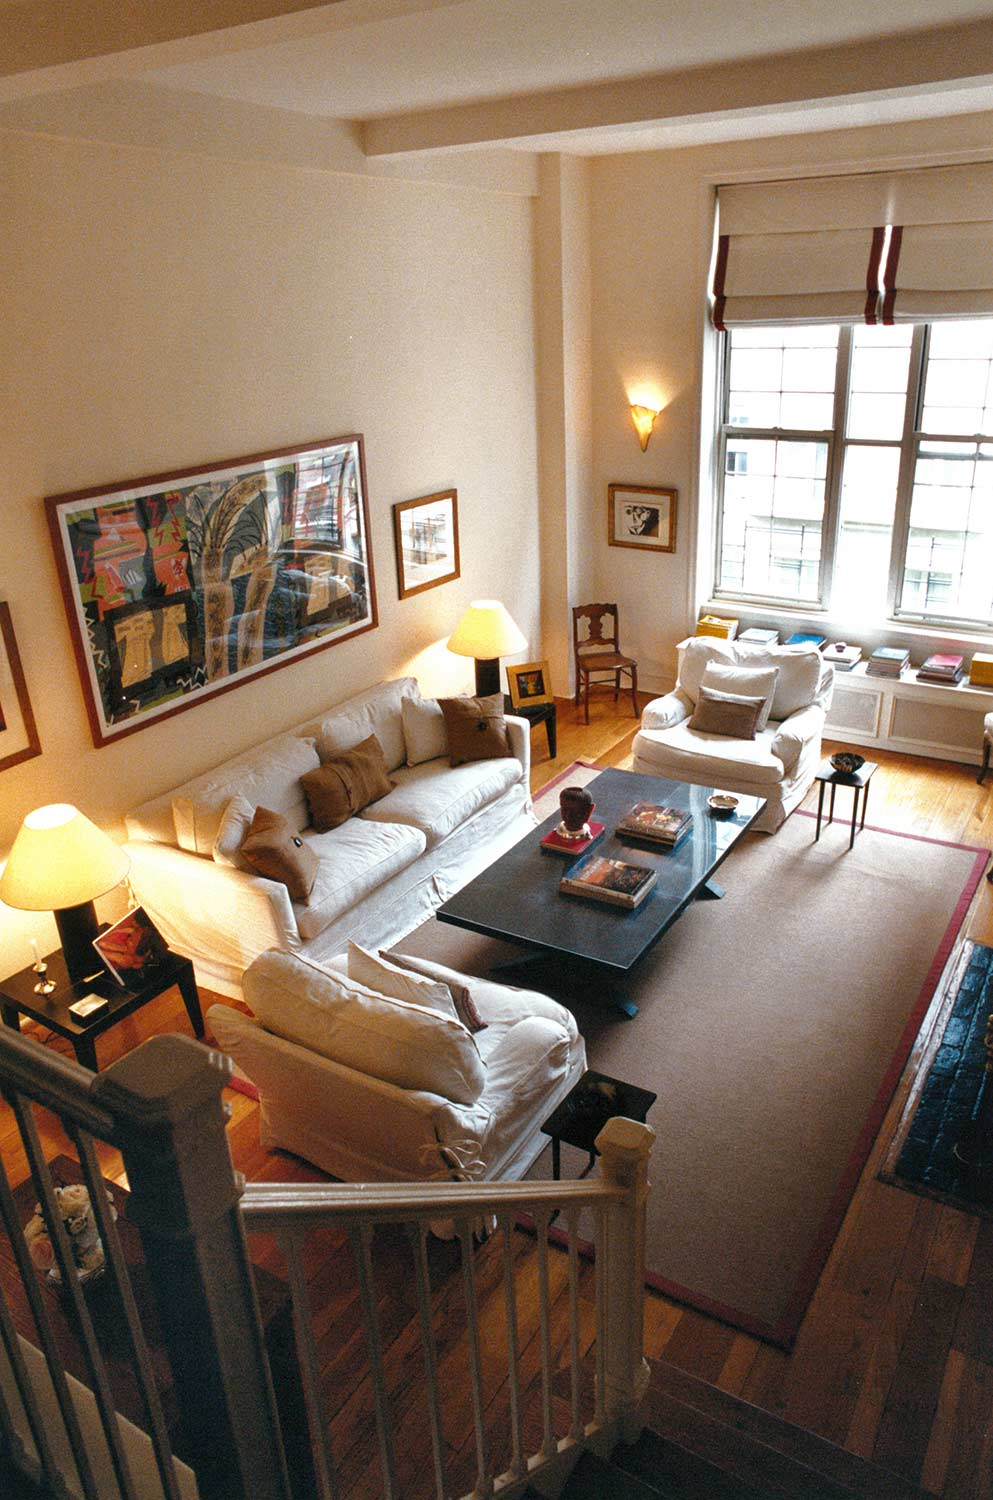 style_residential_beekman_place_ny_7.jpeg